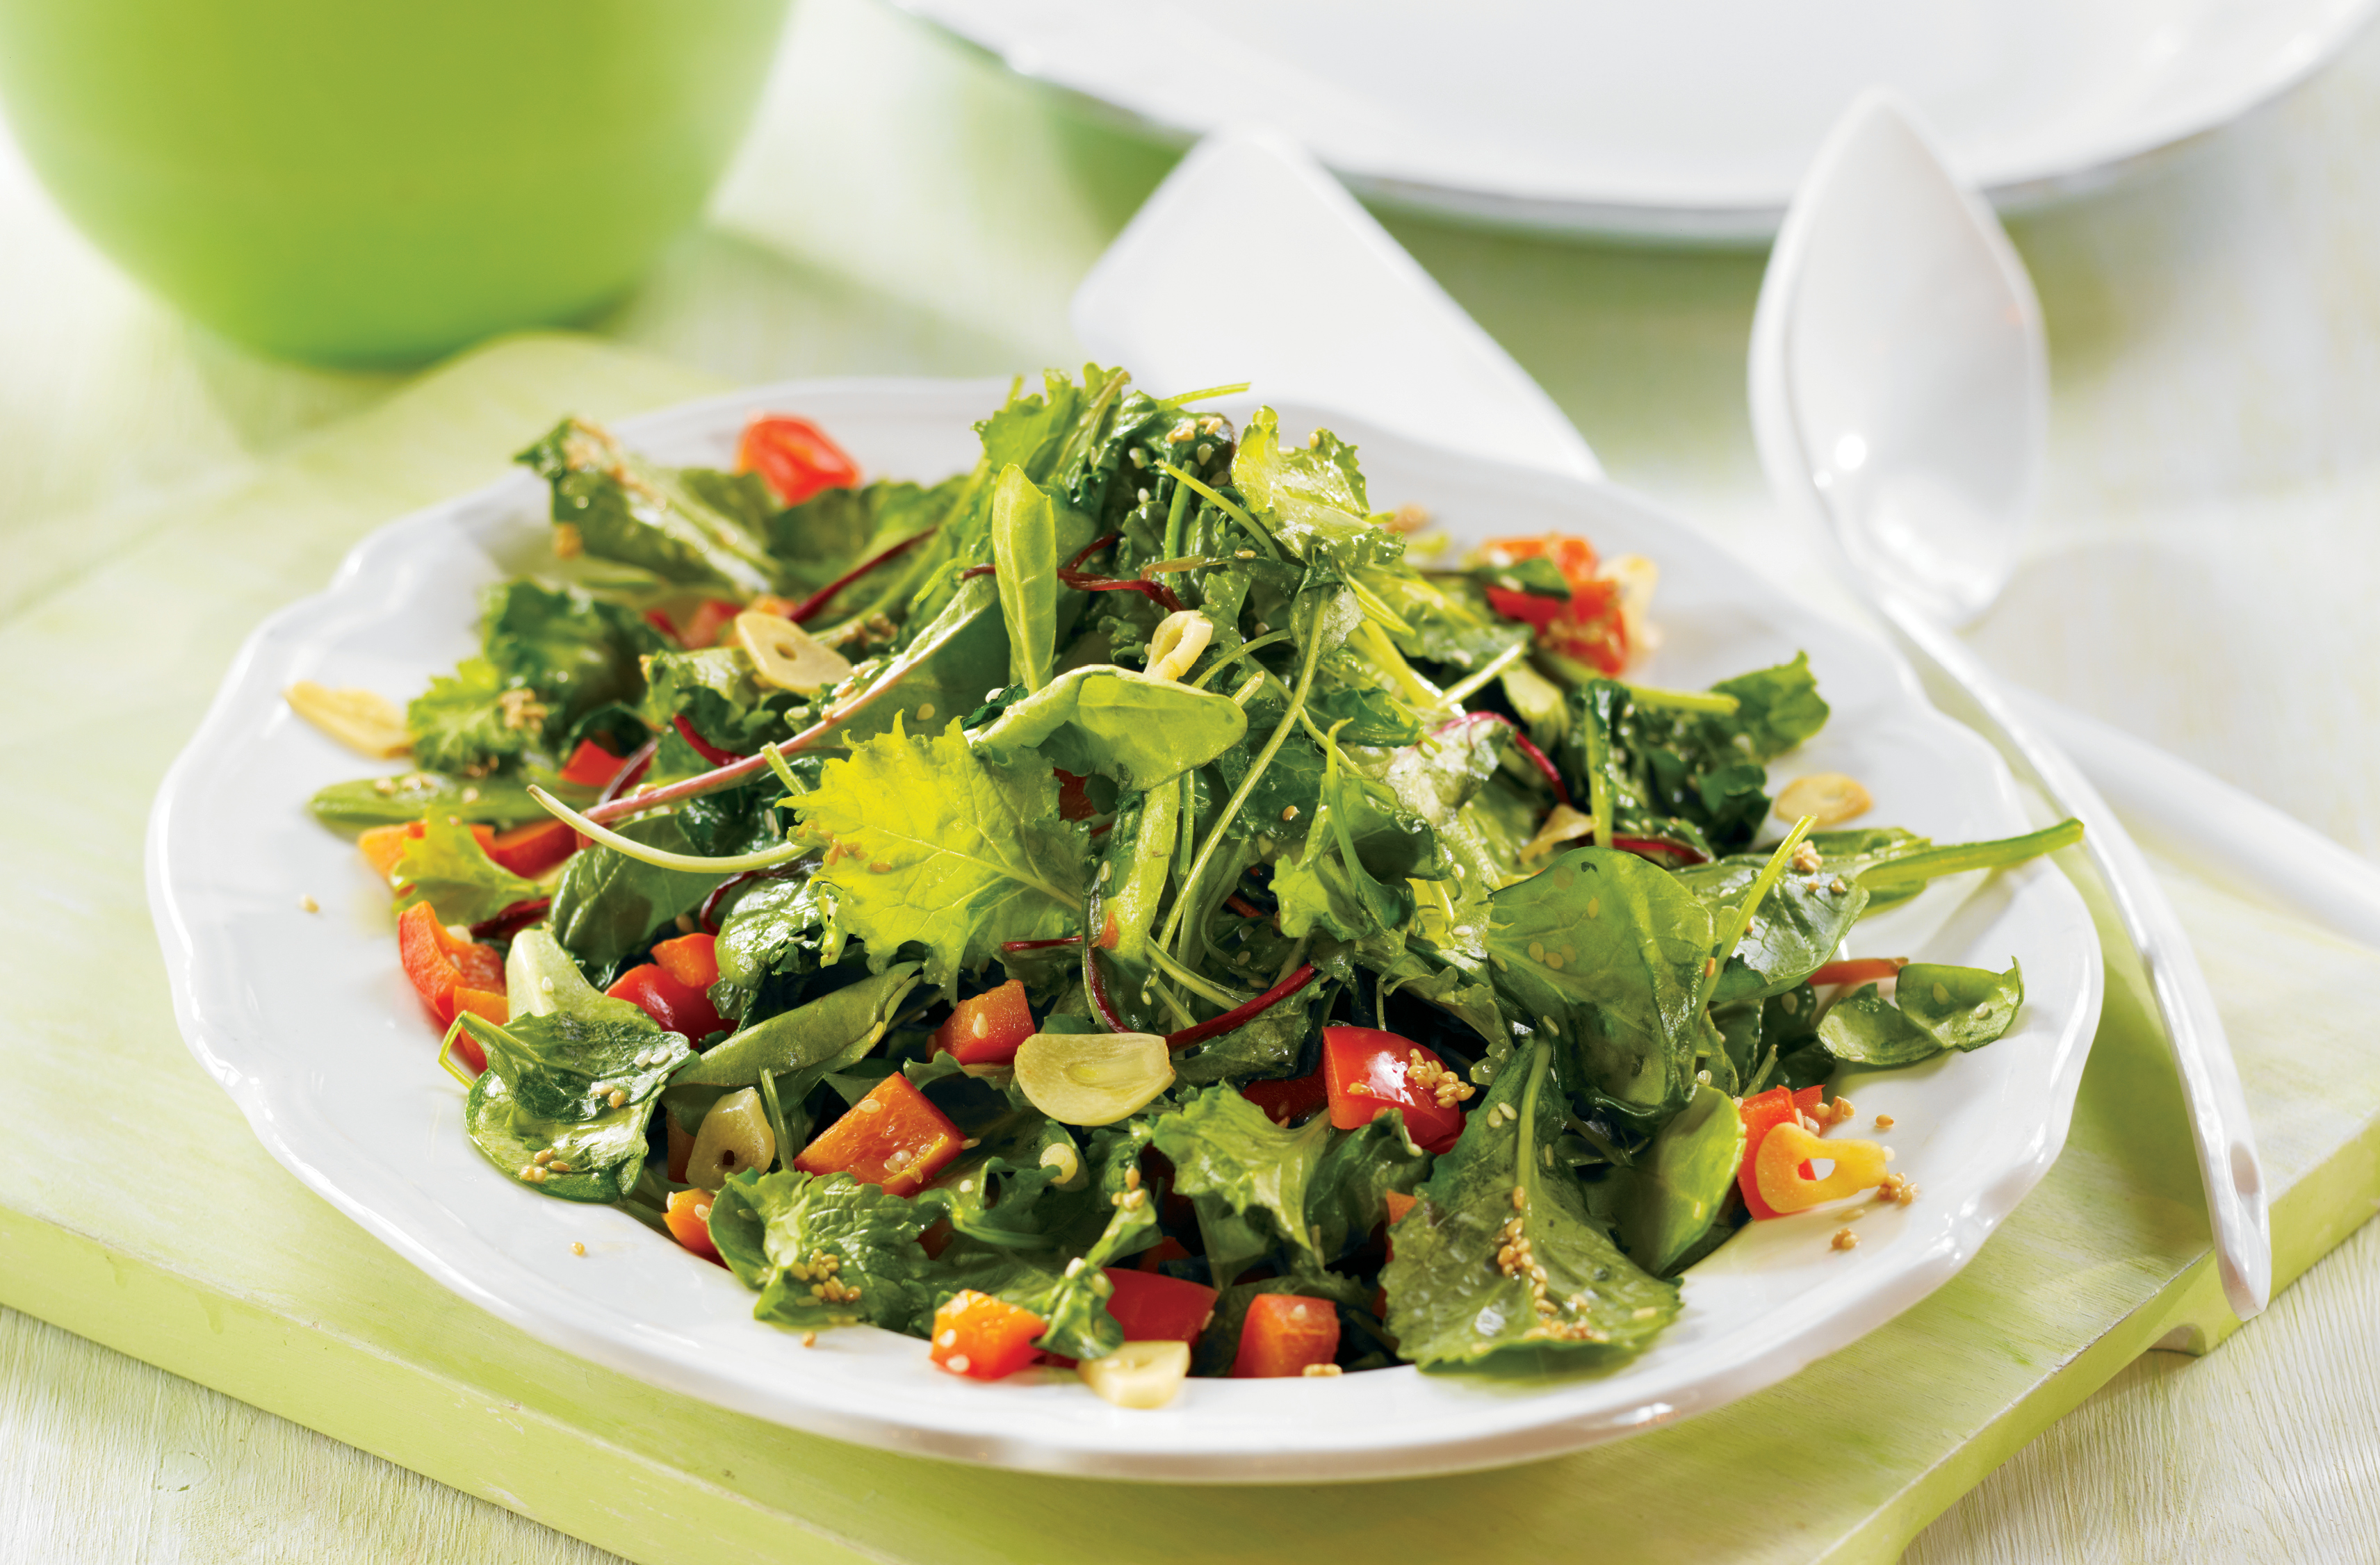 Bowl of sautéed mixed greens salad with red peppers, garlic & sesame seeds